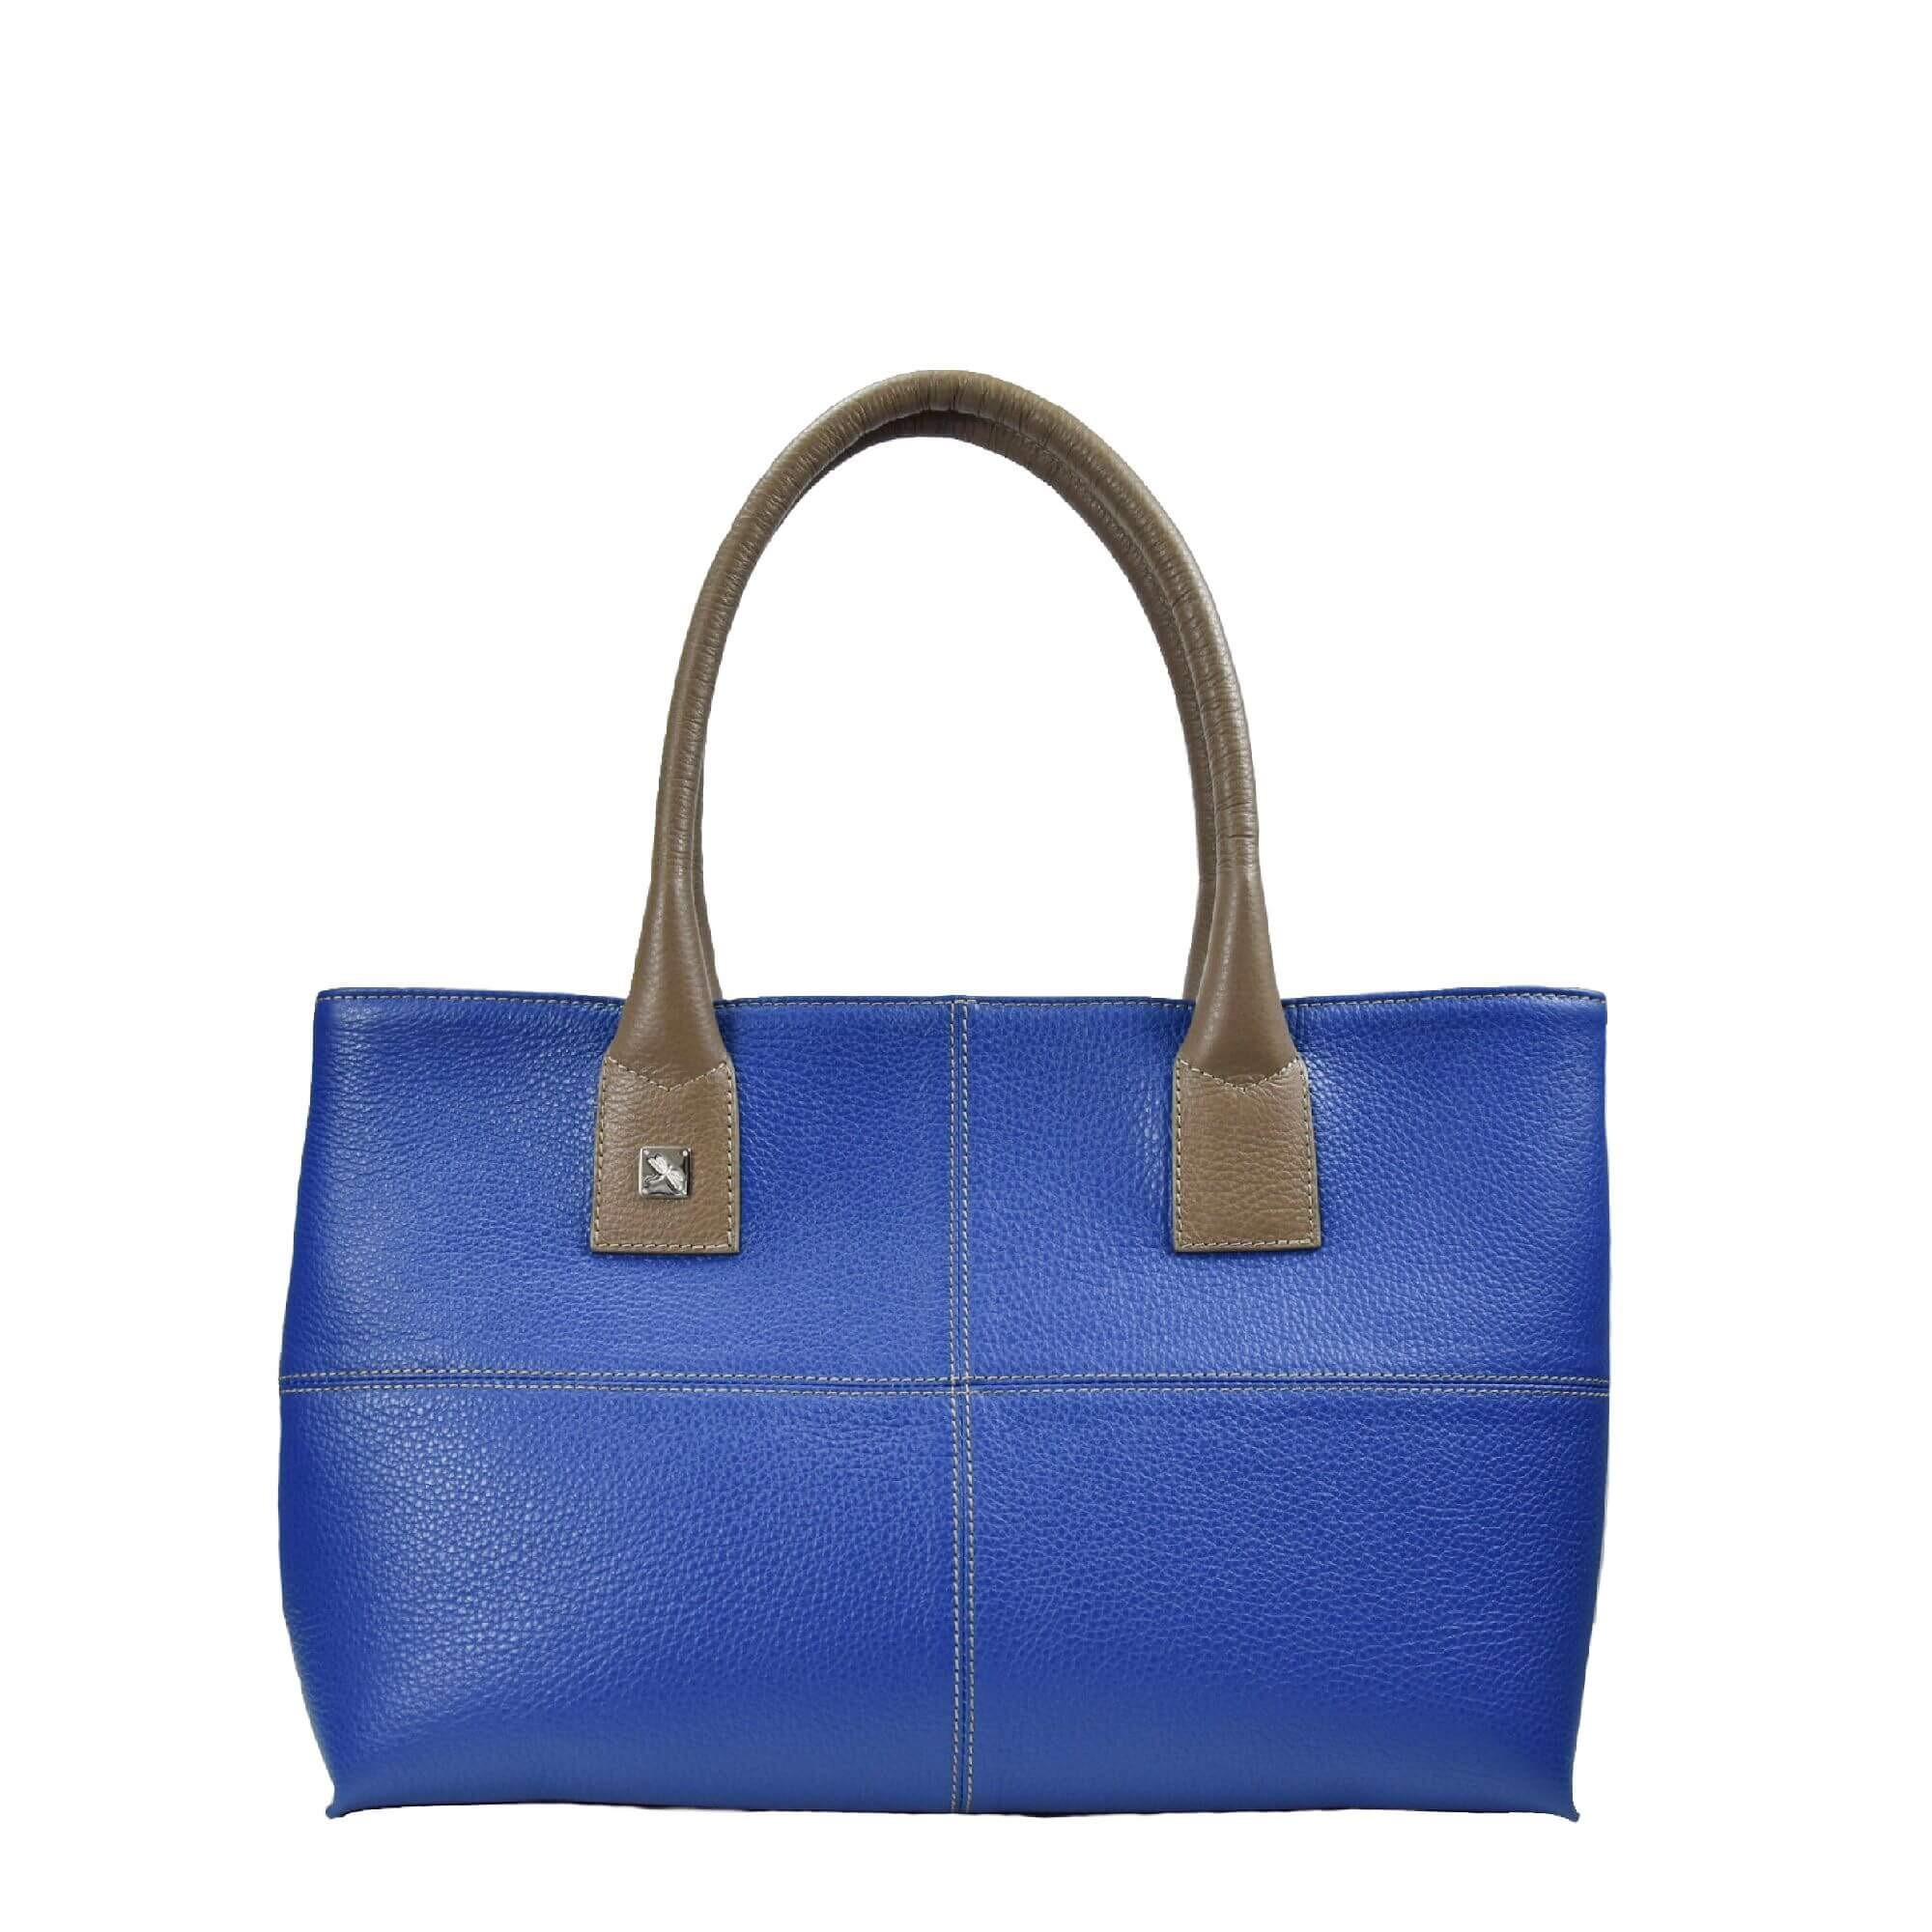 blue and taupe leather bag